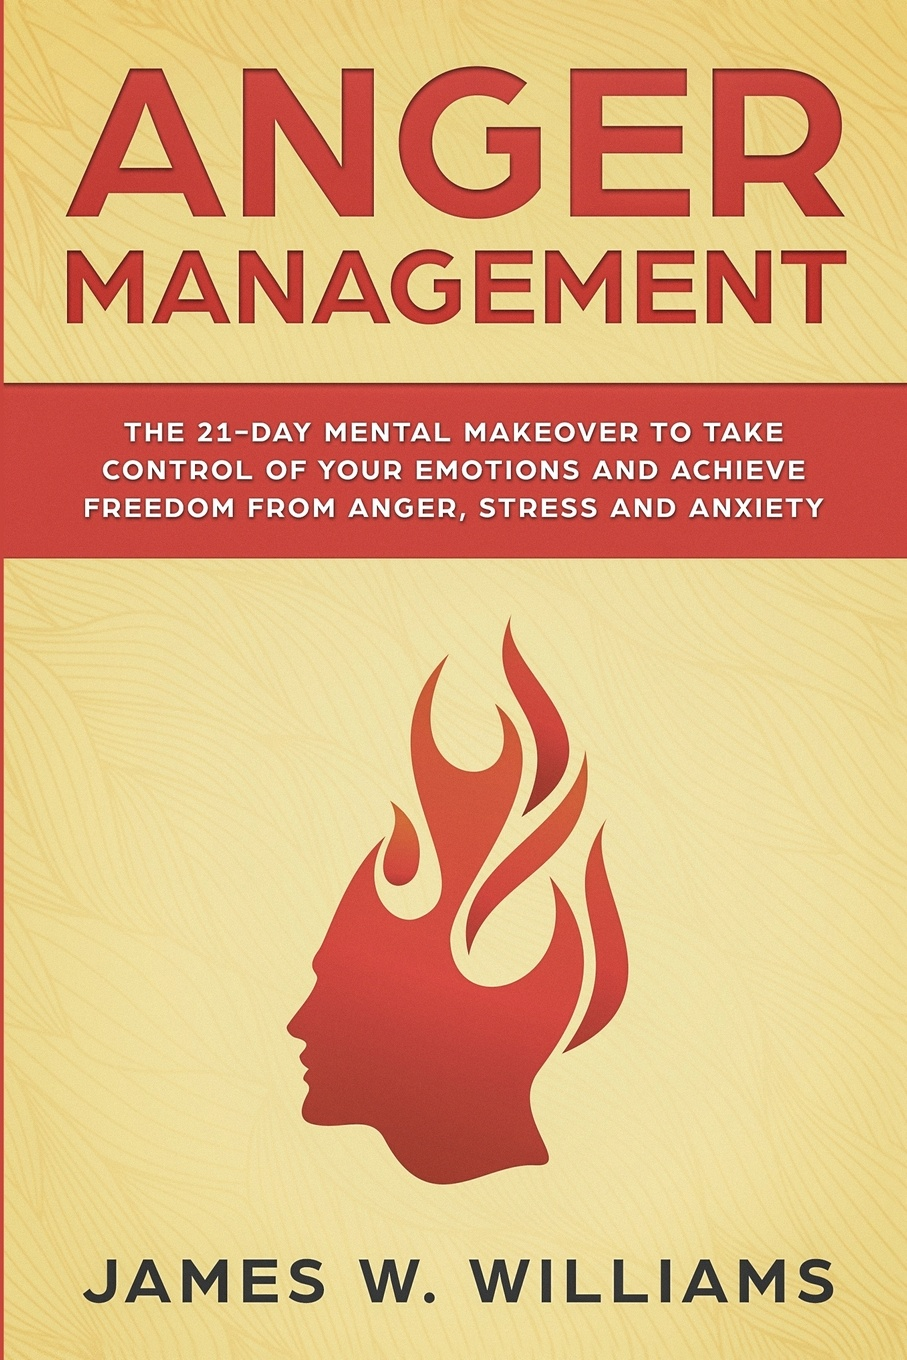 лучшая цена James W. Williams Anger Management. The 21-Day Mental Makeover to Take Control of Your Emotions and Achieve Freedom from Anger, Stress, and Anxiety (Practical Emotional Intelligence Book 2)